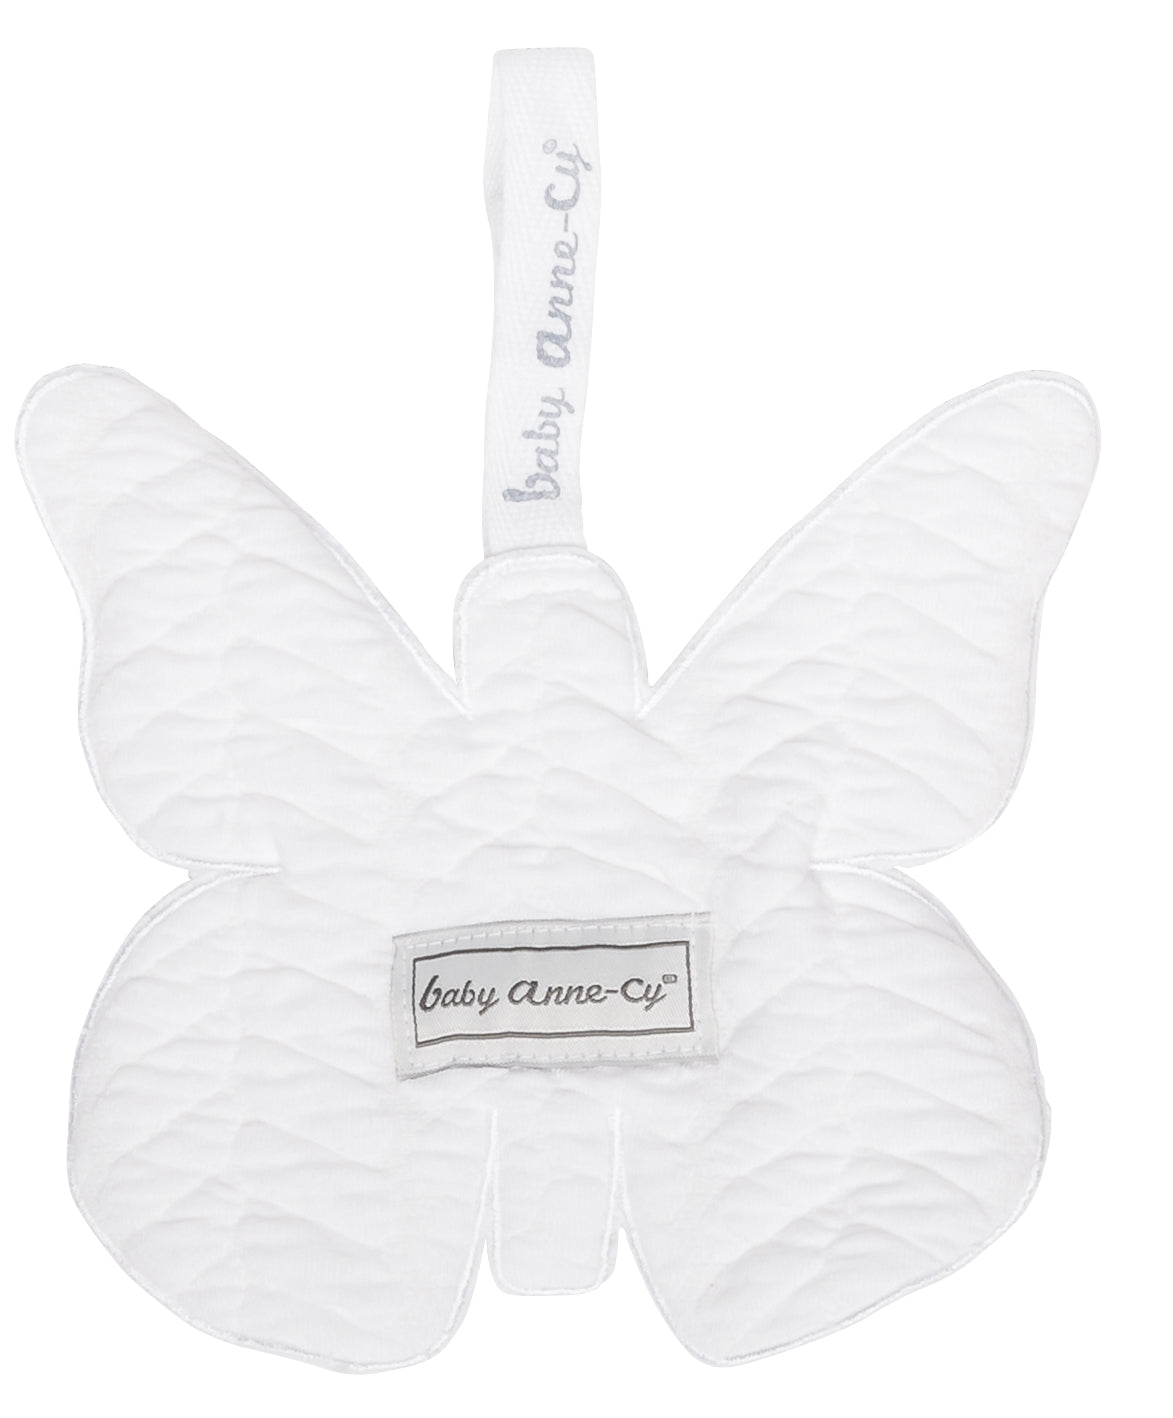 Speendoekje vlinder butterfly cable wit - Baby Anne-Cy